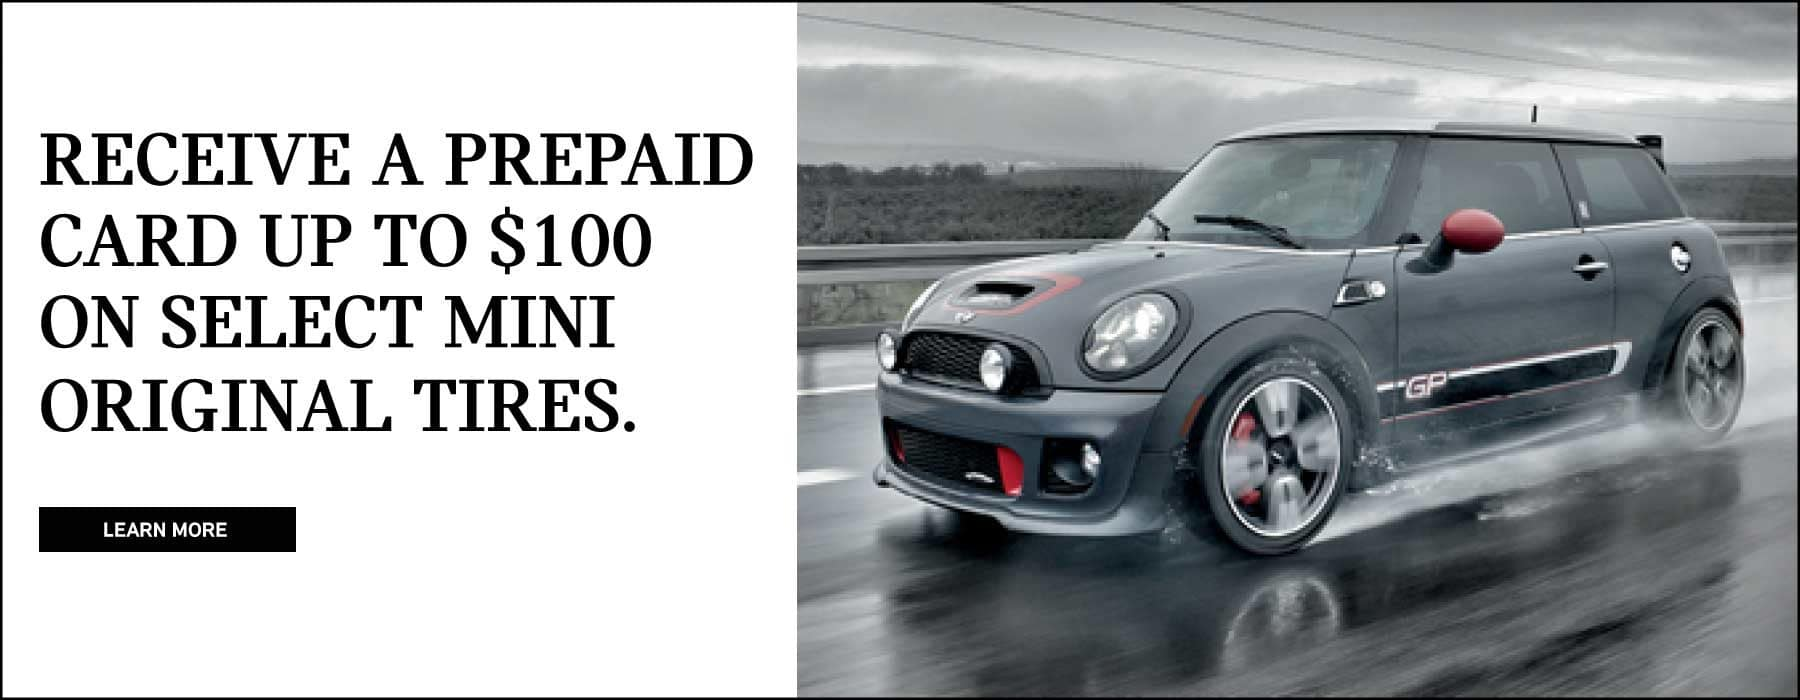 Receive a prepaid card up to $100 on select MINI orginal tires. Learn more button. MINI John Cooper works GP on slick road.